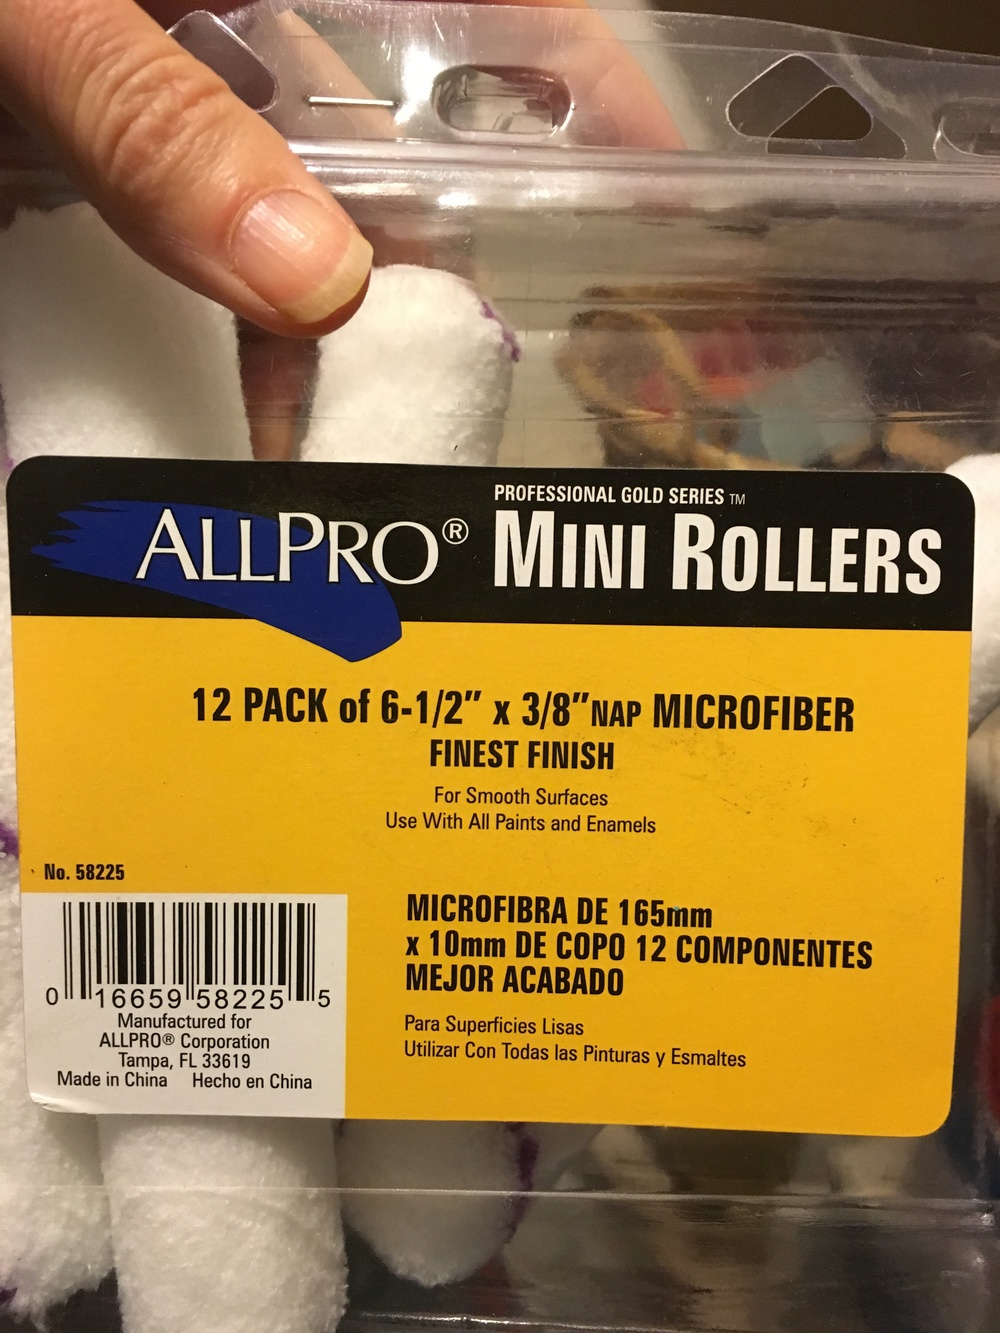 "Doesn't HAVE to be exact brand but does need to be micro-fiber 3/8""nap."